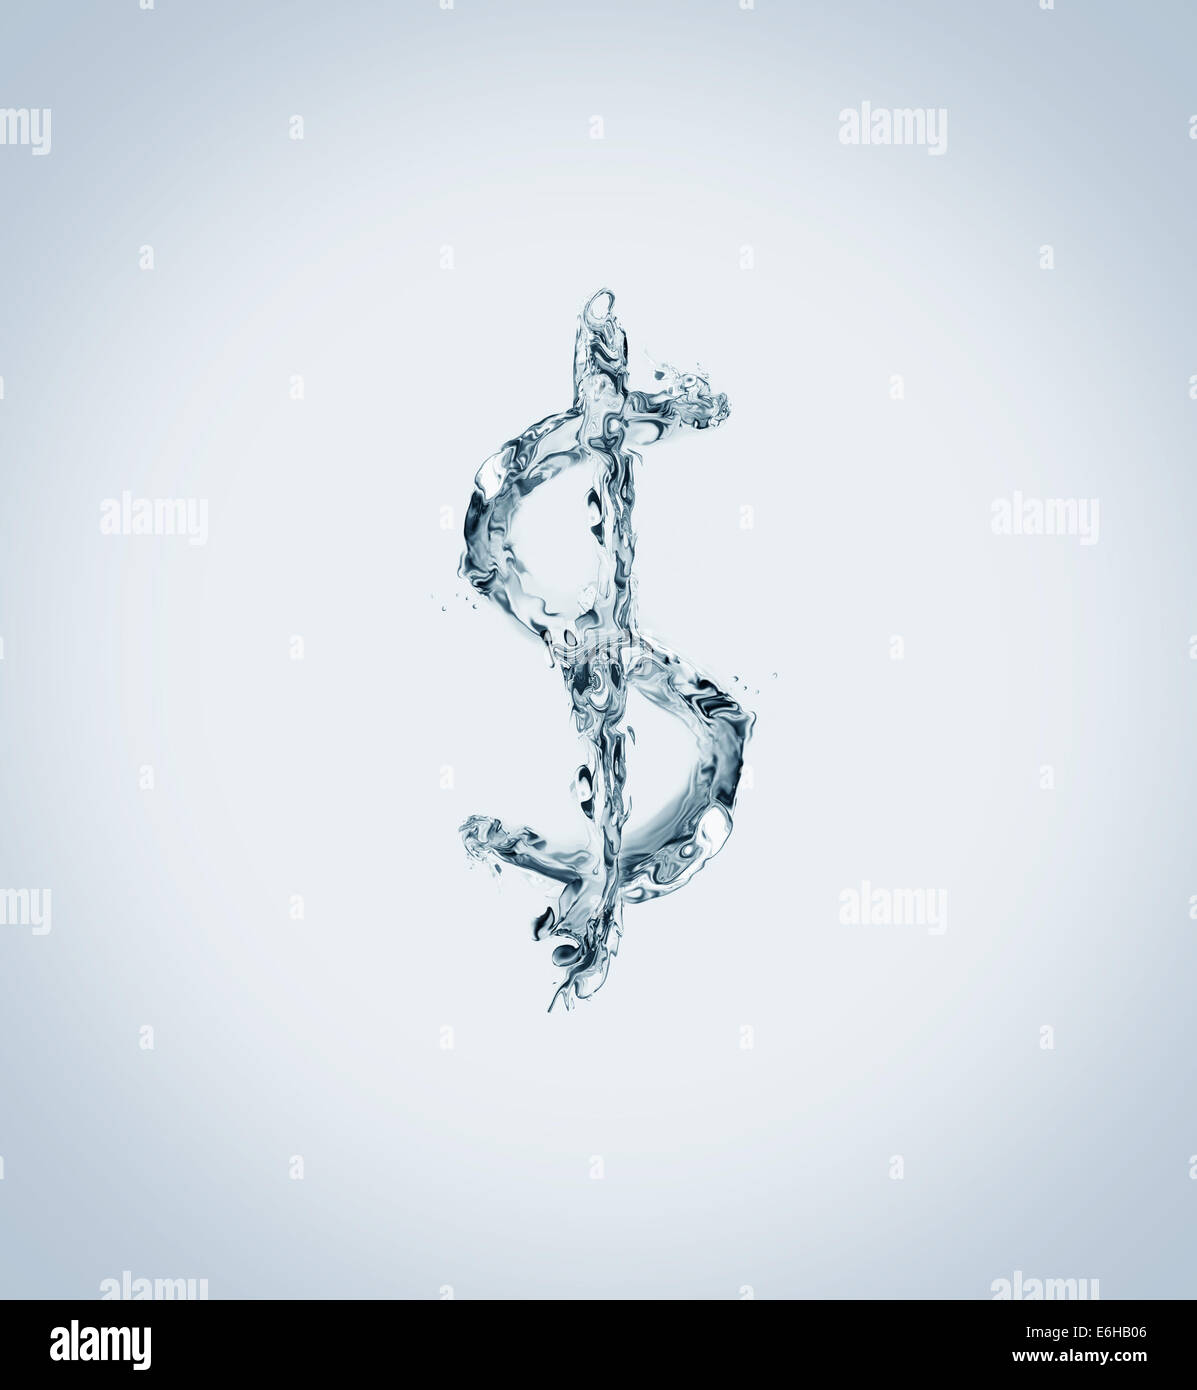 The US dollar currency symbol made of water. - Stock Image